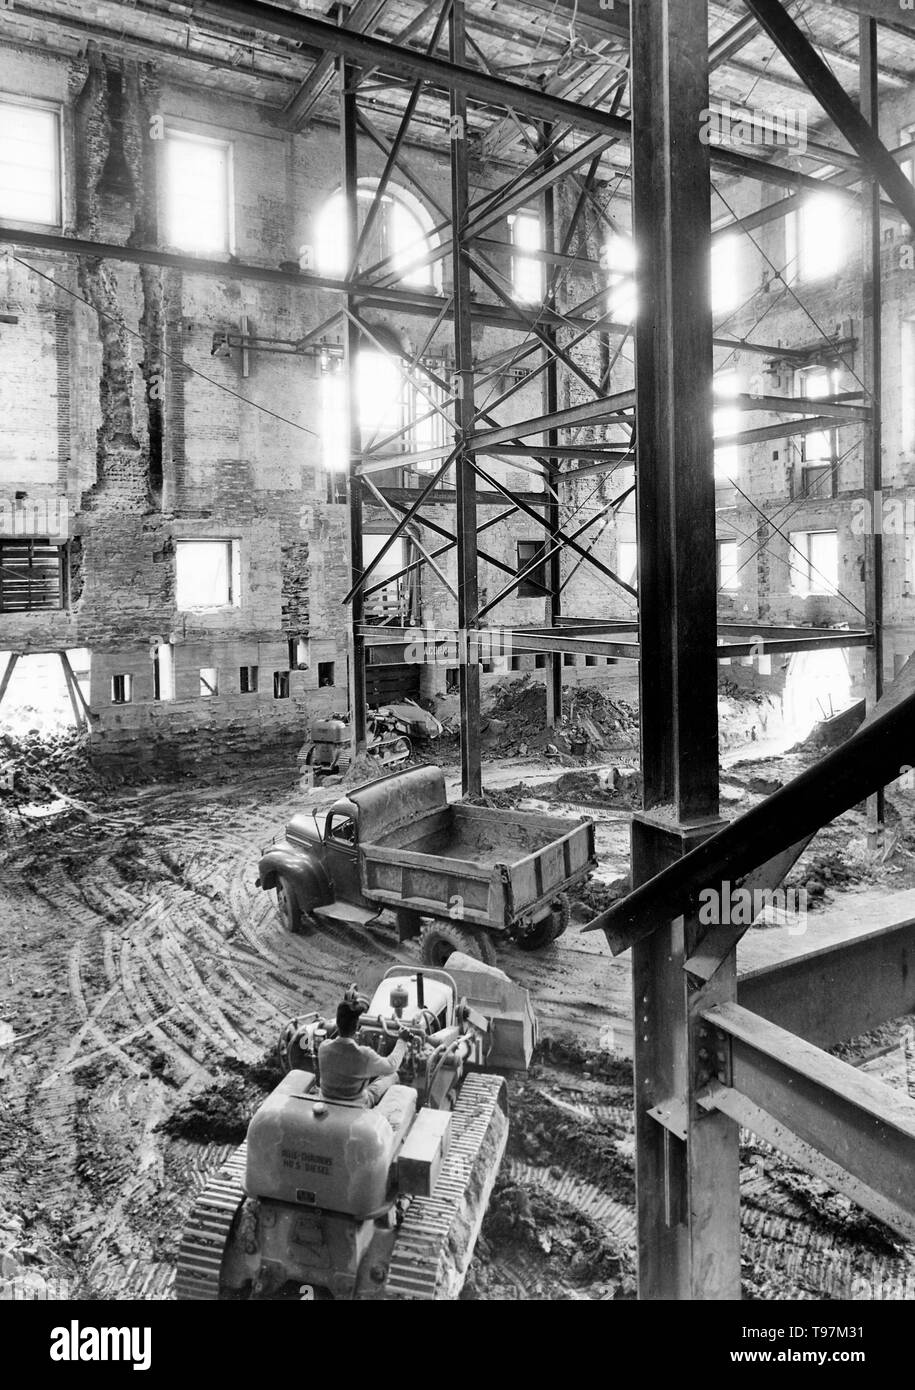 The Shell of the White House during the Renovation, 05/17/1950 - Stock Image